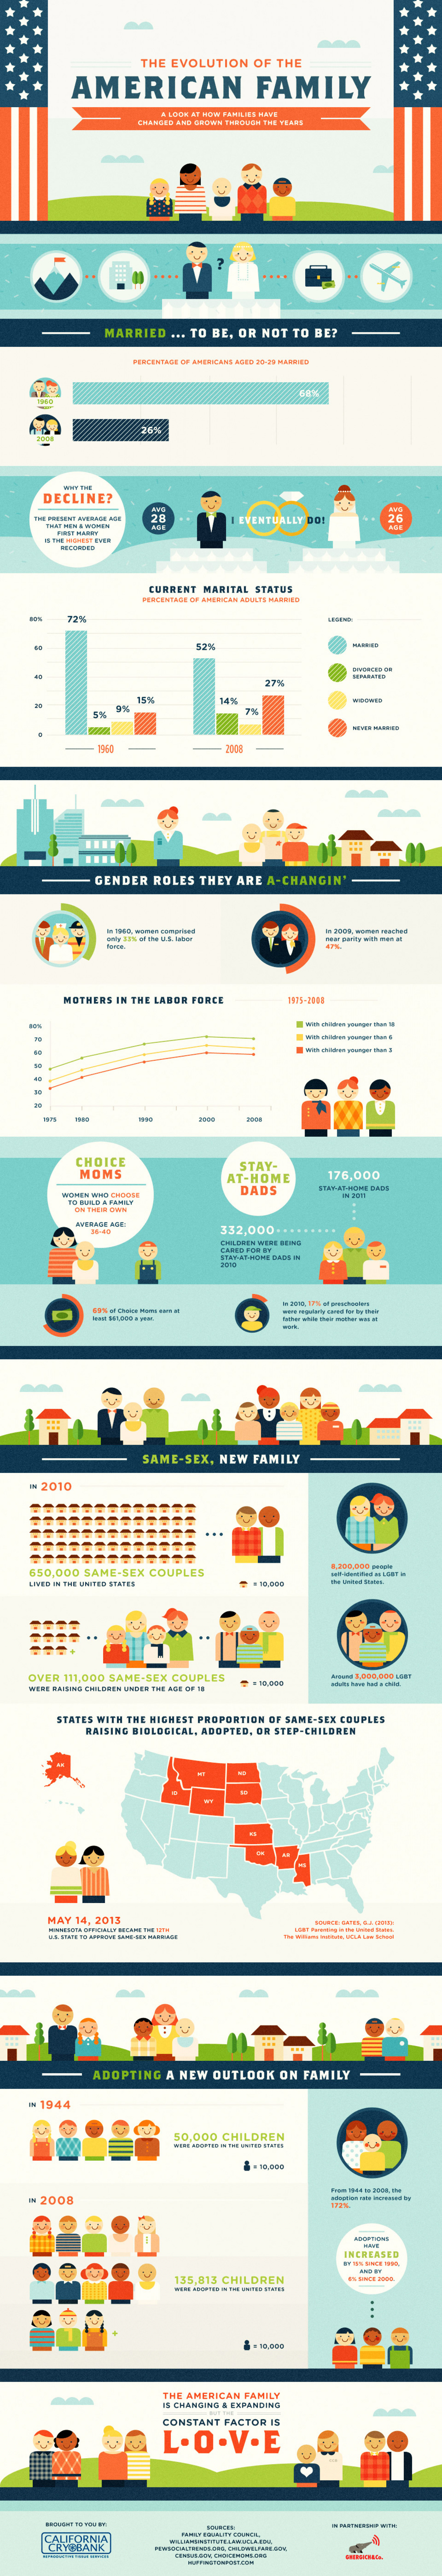 The Evolution of the American Family Infographic